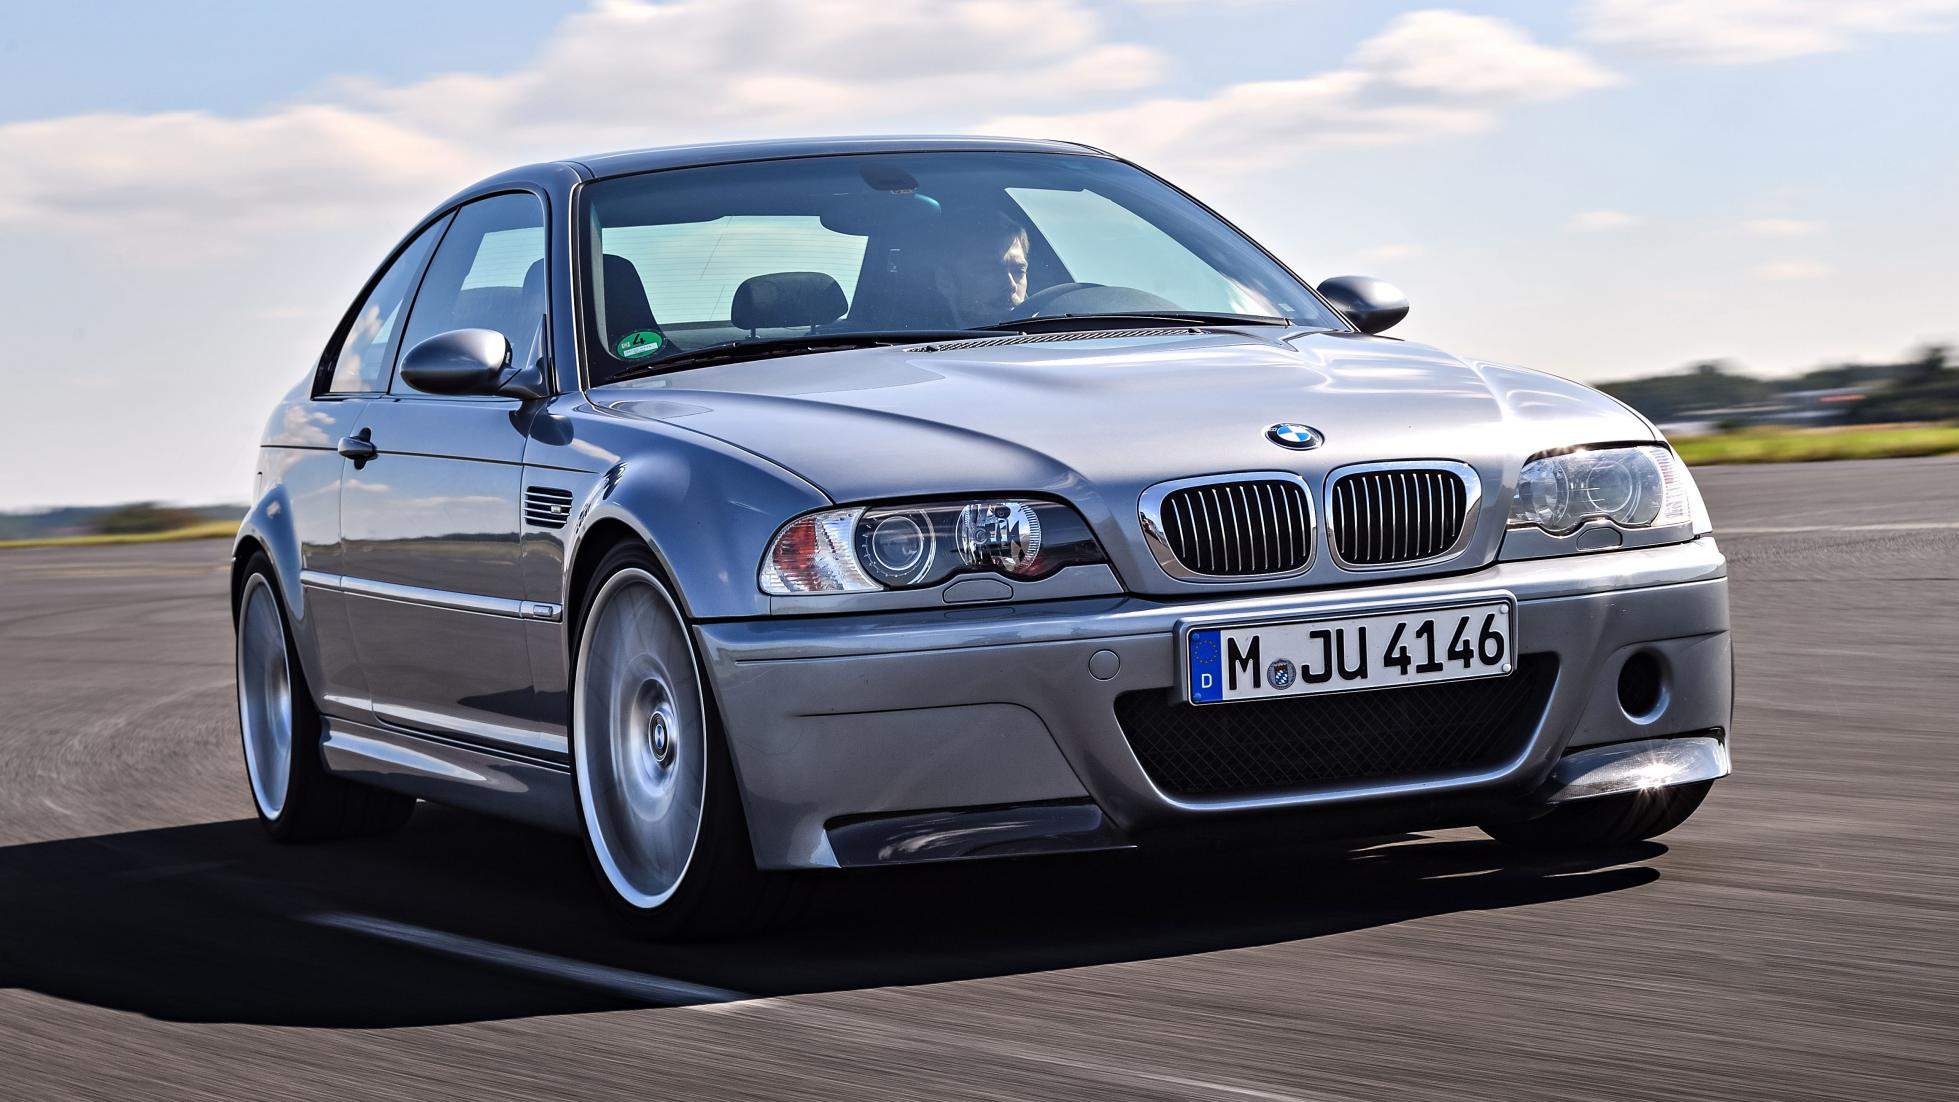 Topgear Singapore You Can Now Get A Manual Gearbox For Your Bmw E46 M3 Csl Coupe Sport Leichtbau